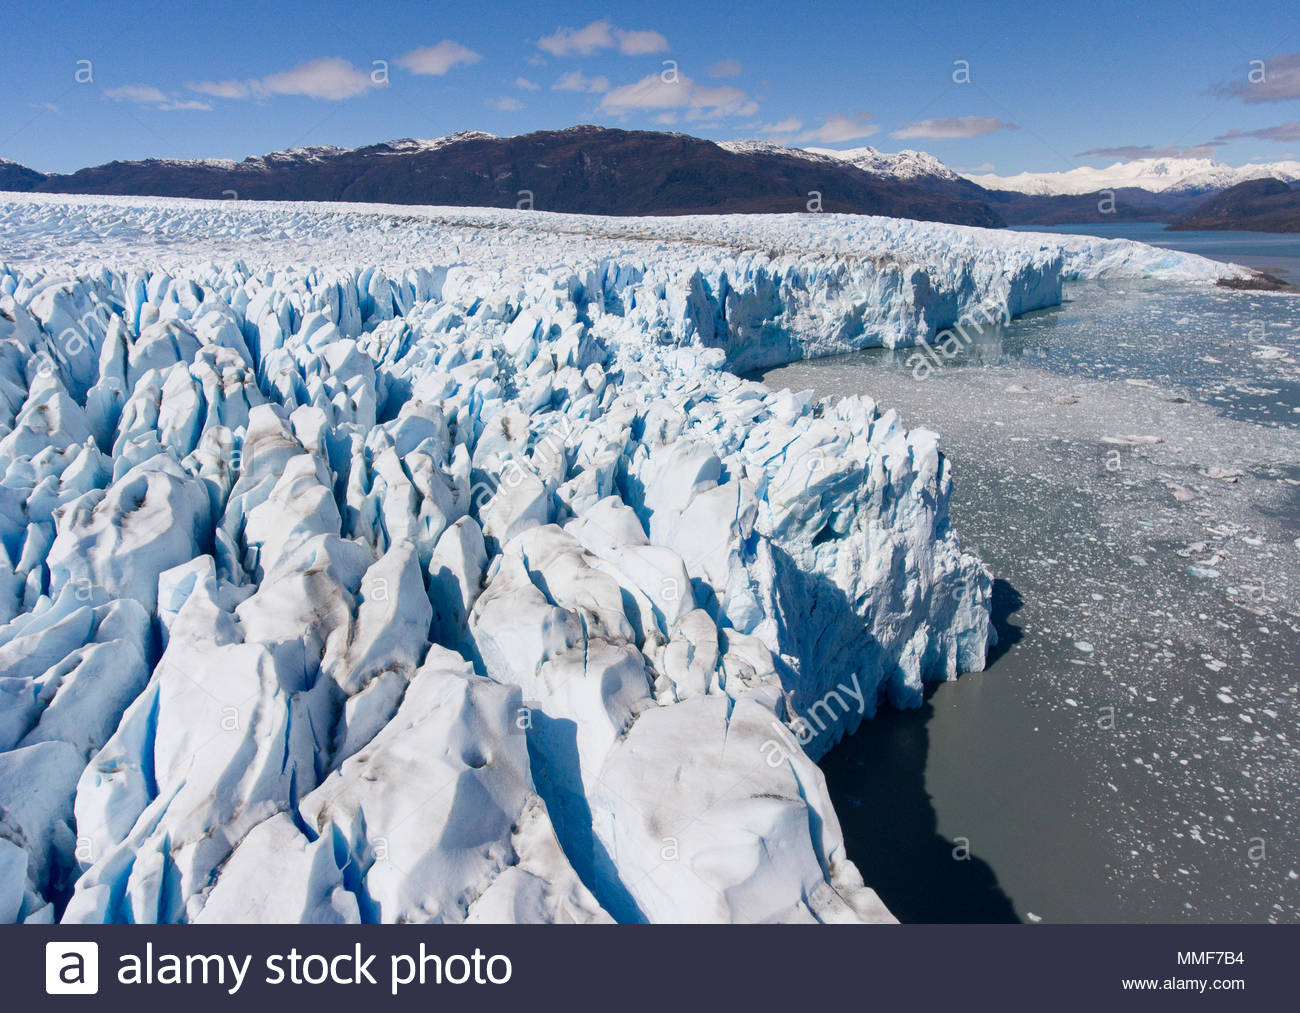 An aerial view of the Bruggen glacier located in Bernardo O'Higgins National Park, Chile. - Stock Image